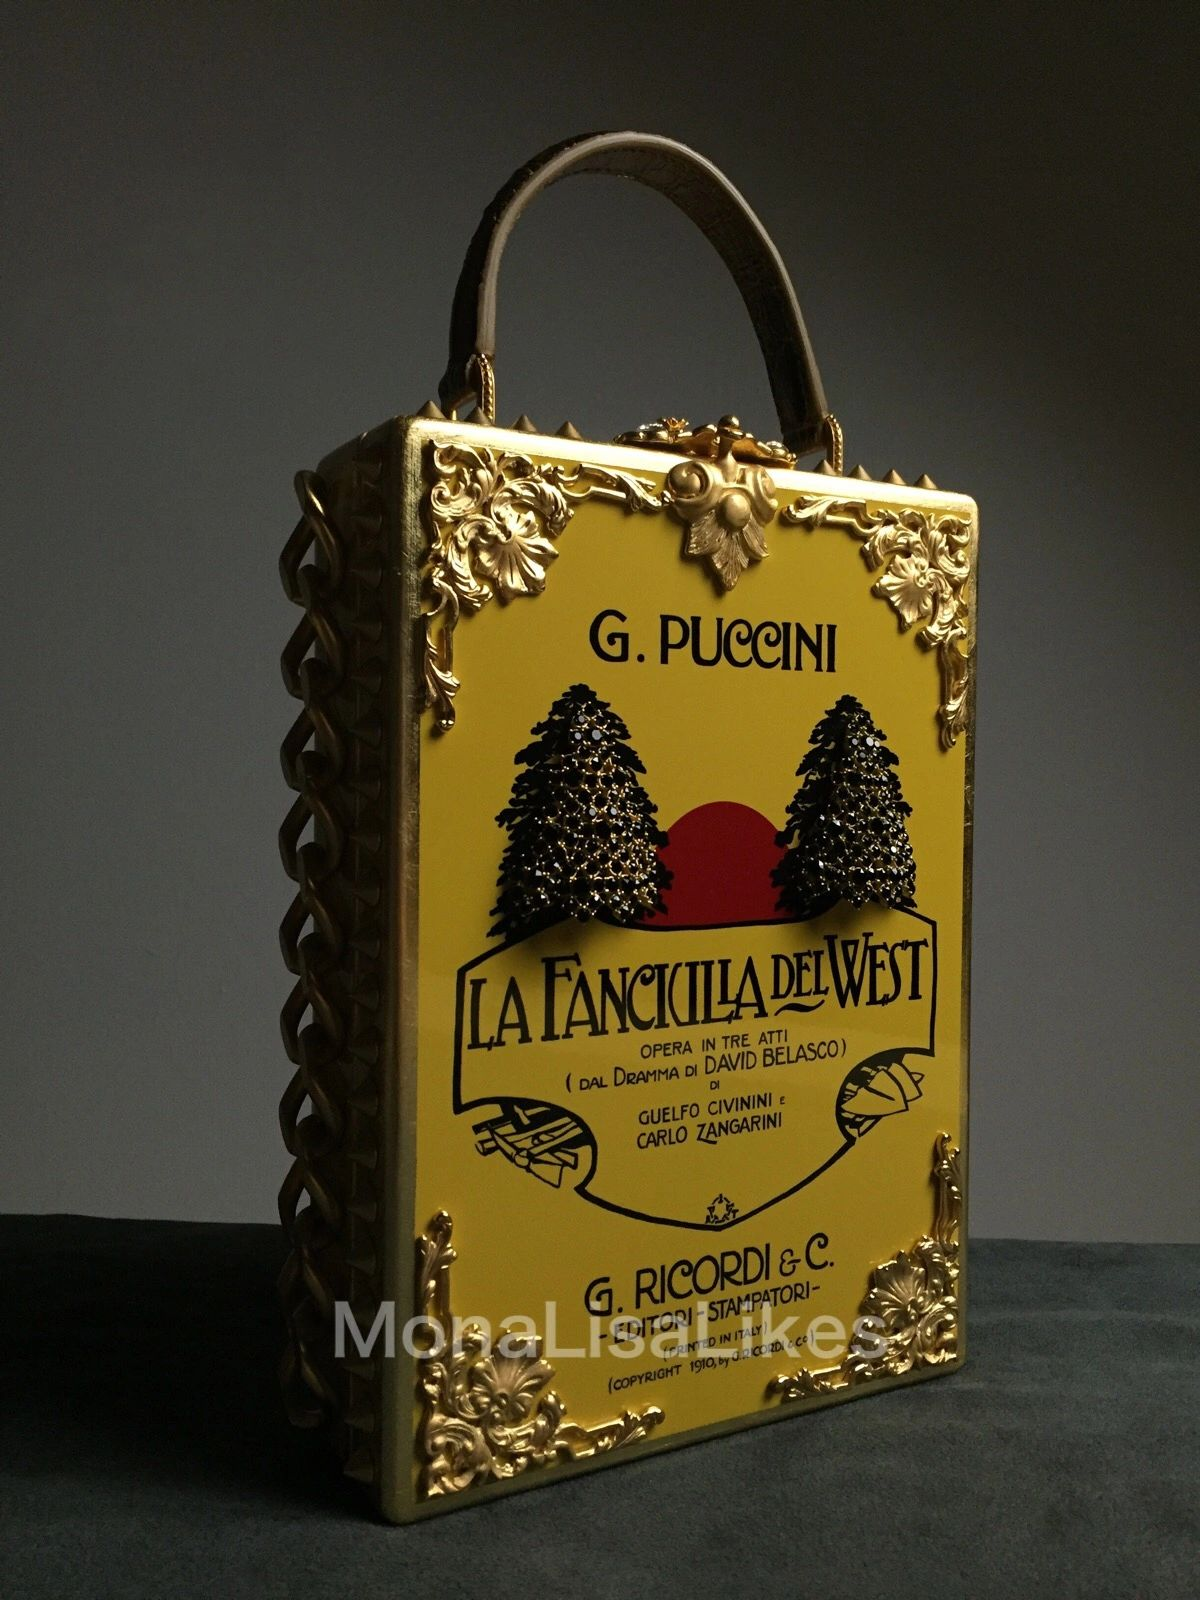 386c3b9c0f DOLCE   GABBANA Puccini Poster Box Bag from ALTA MODA collection was never  sold in stores